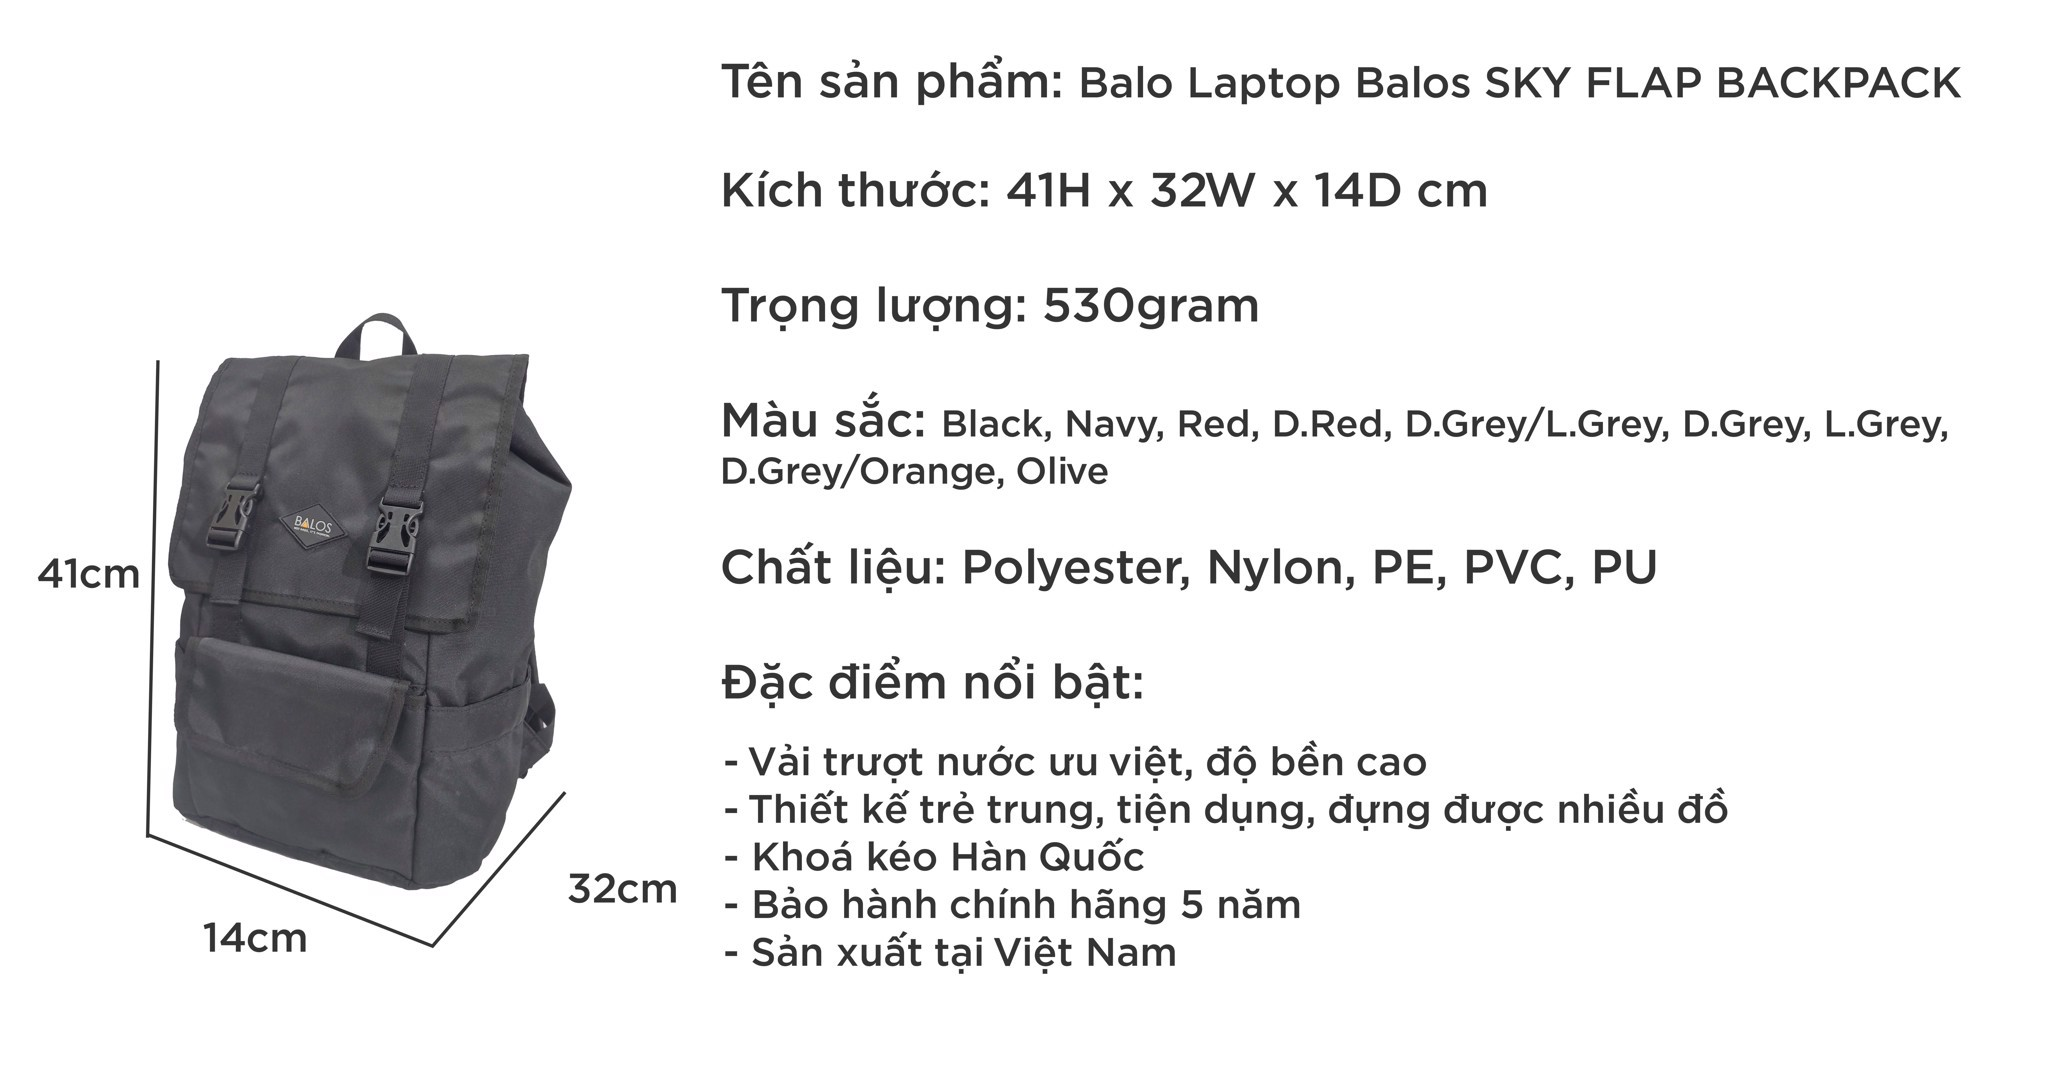 Balos SKY FLAP Black Backpack - Balo Laptop thời trang